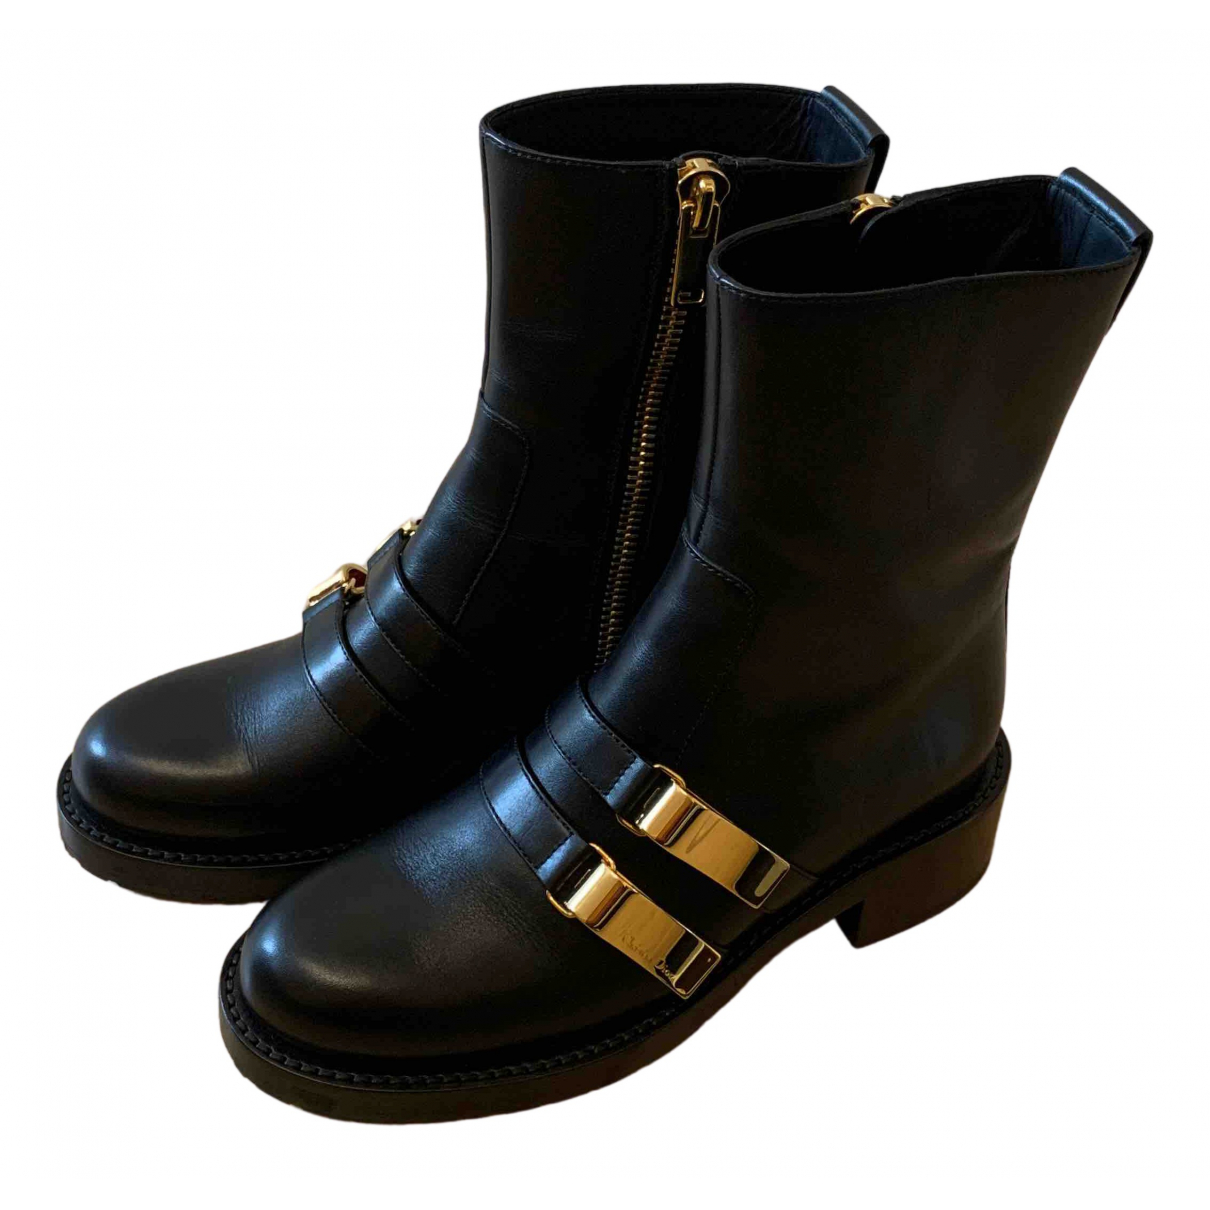 Dior N Black Leather Ankle boots for Women 38 EU